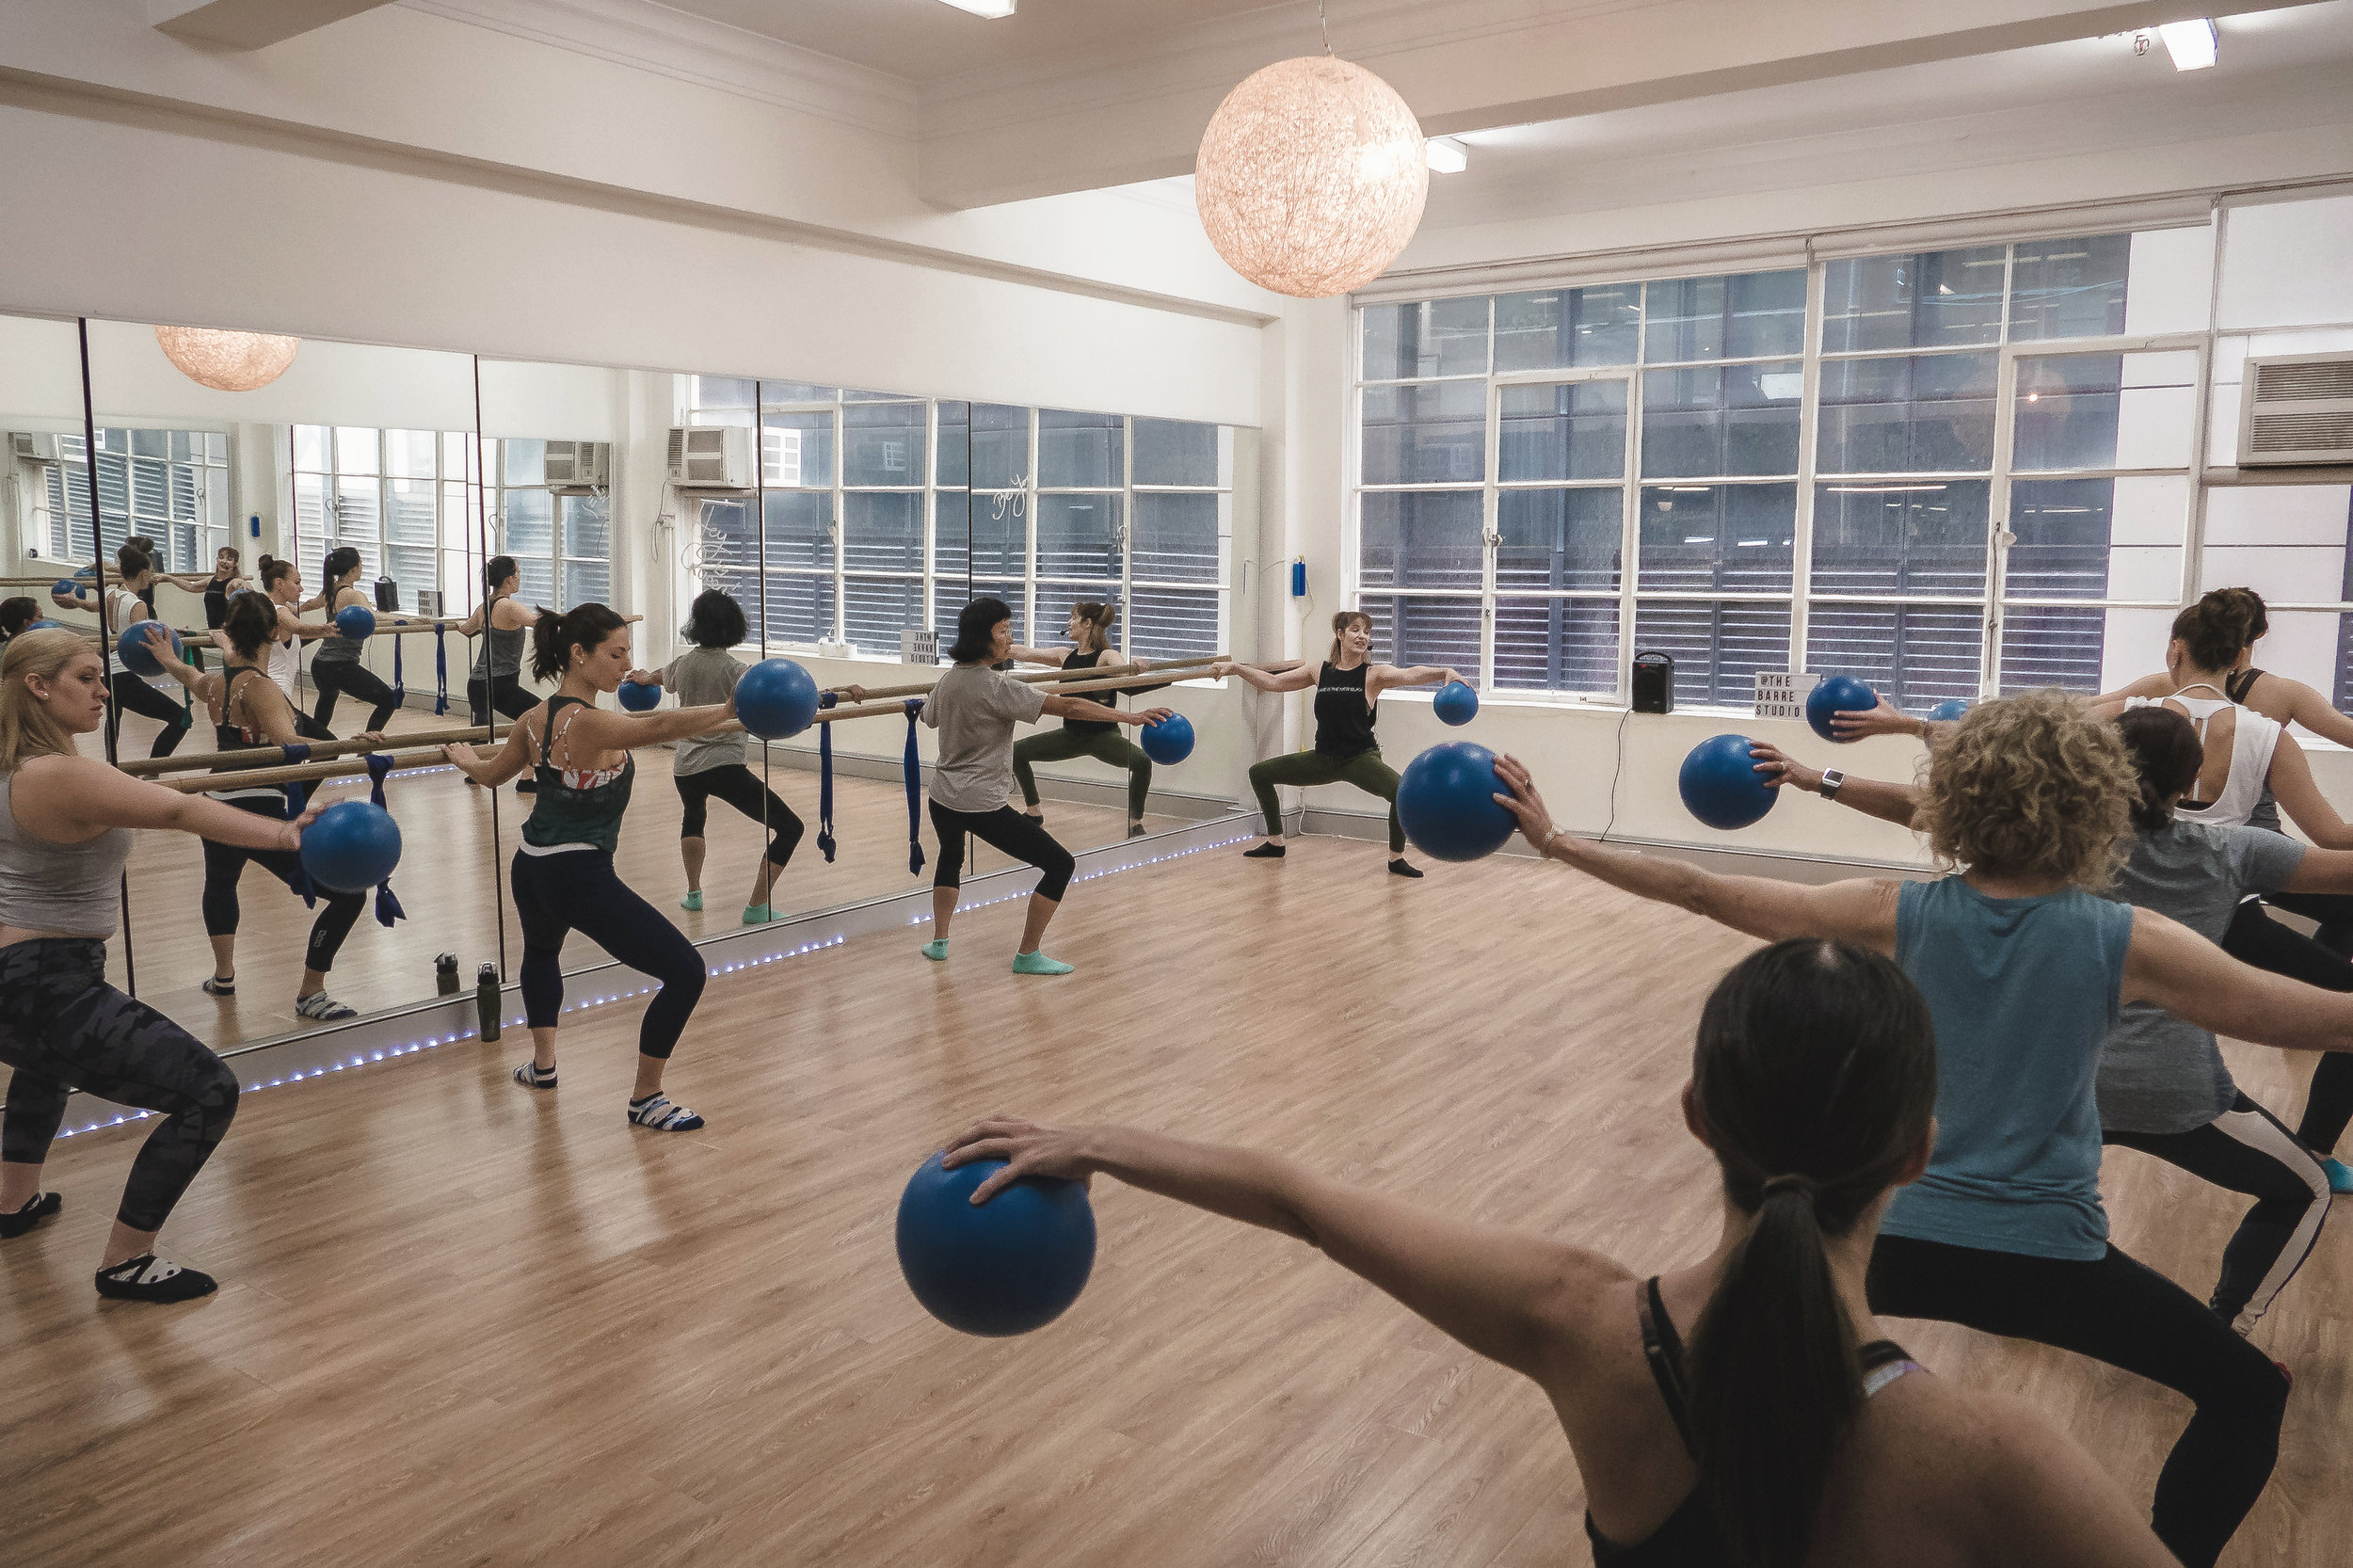 Find a class - From our signature @theBarre classes to Pilates with personality or adult ballet, we've got something to tickle everyone's fancy (and get that burn!)